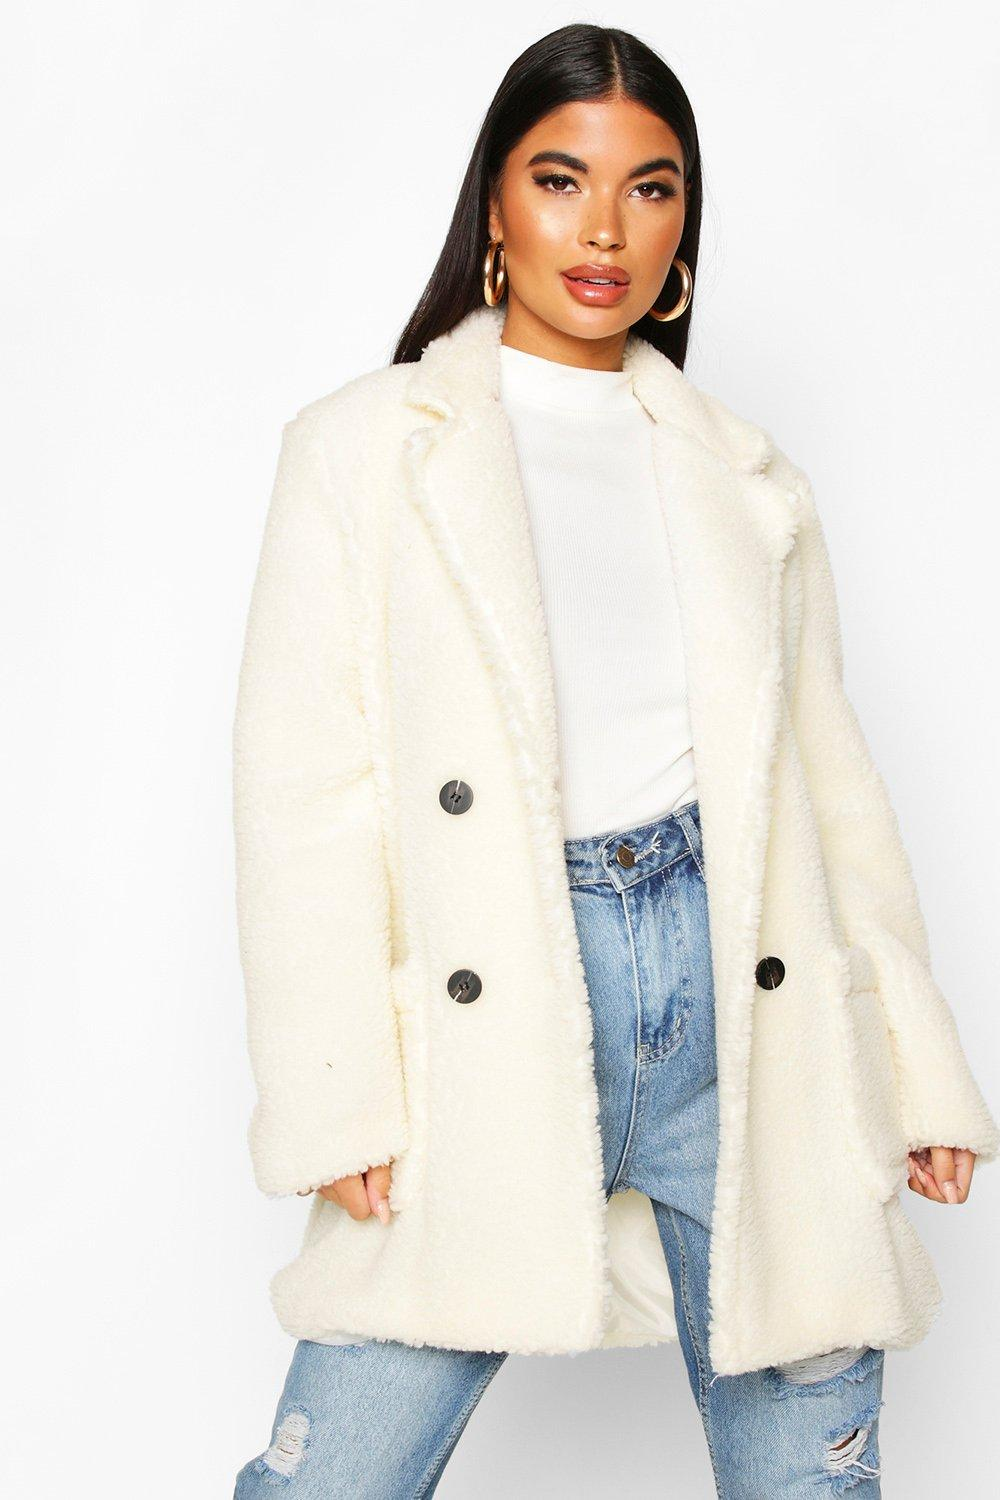 boohoo Womens Petite Double Breasted Teddy Coat - White - 10, White